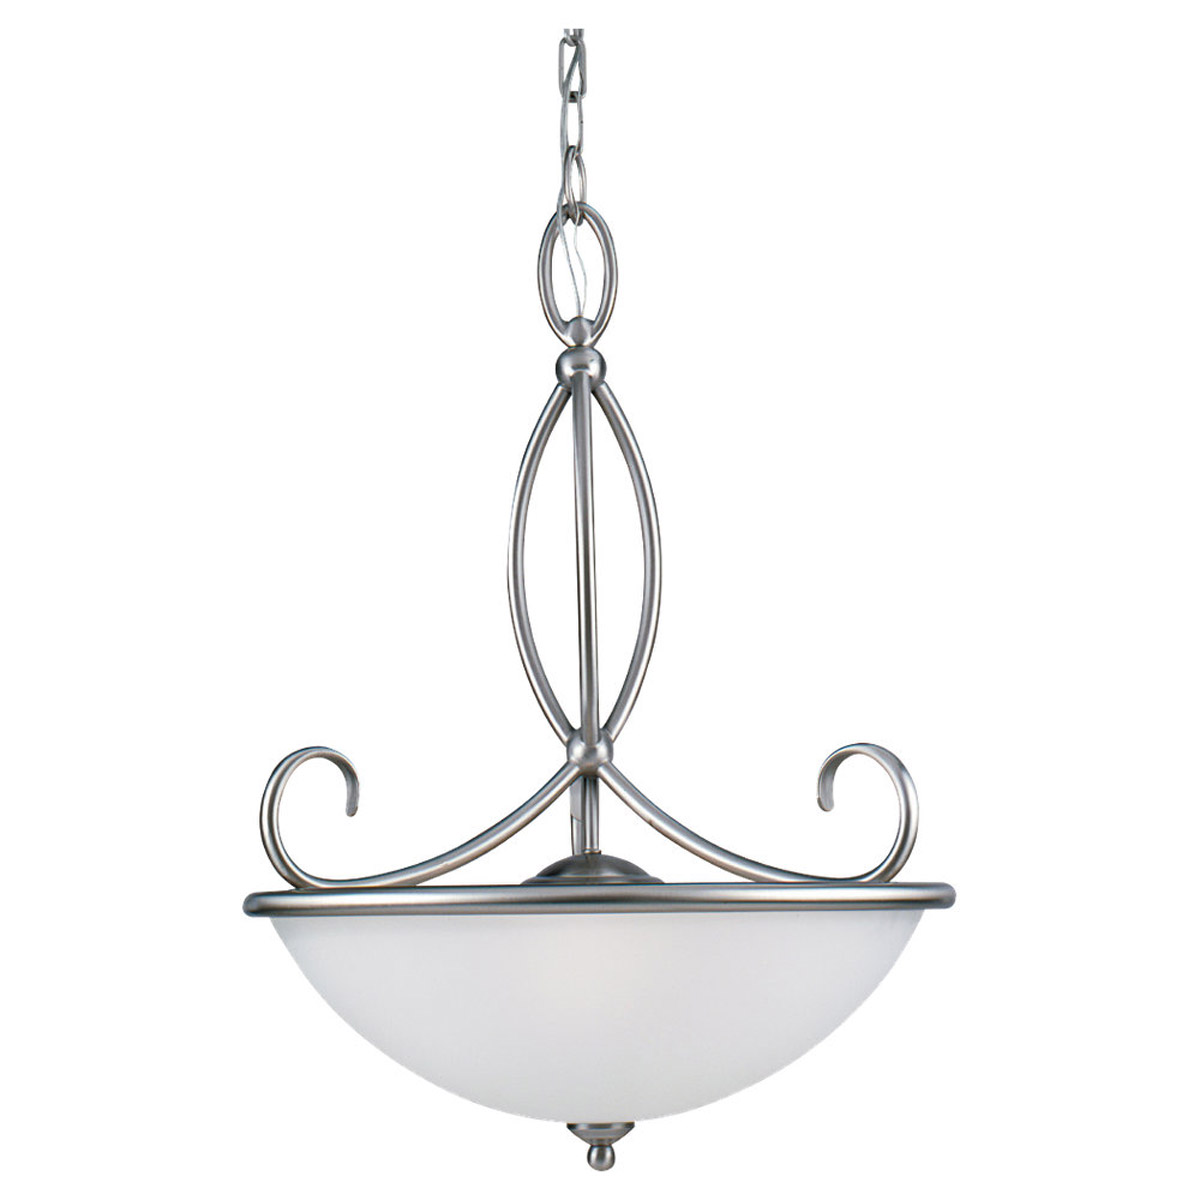 Sea Gull Lighting Pemberton 3 Light Pendant in Brushed Nickel 65075-962